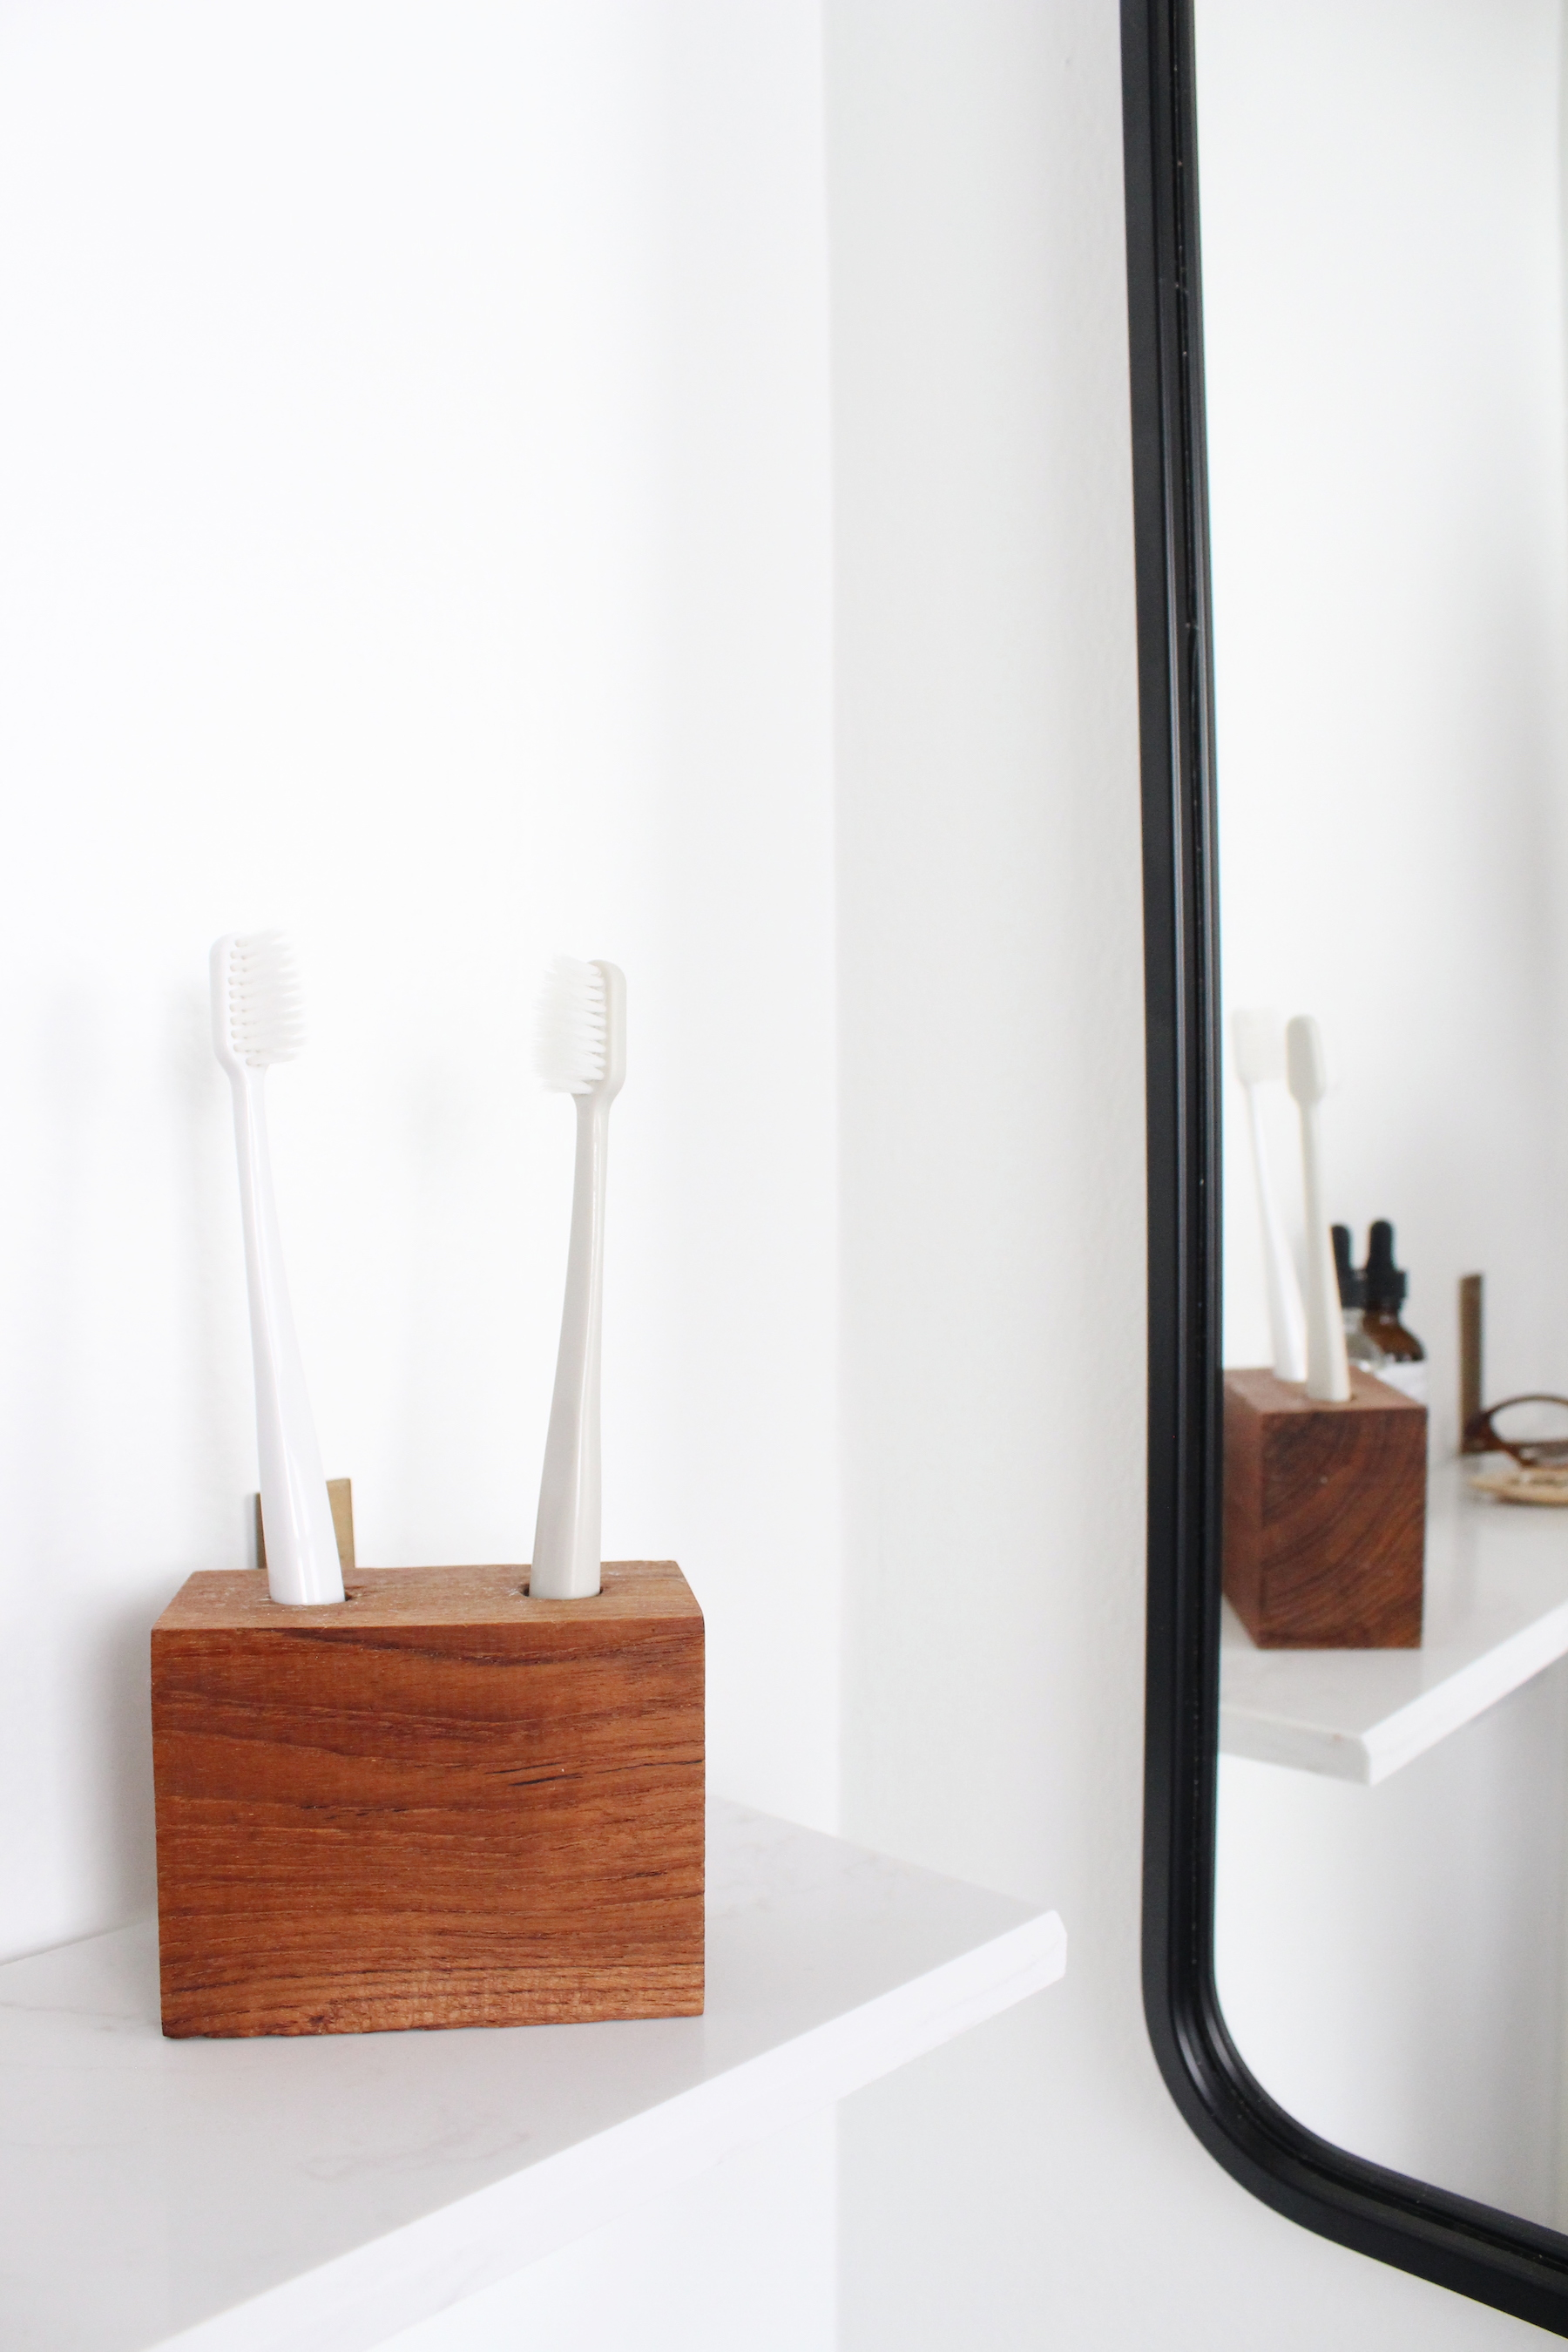 diy toothbrush holder